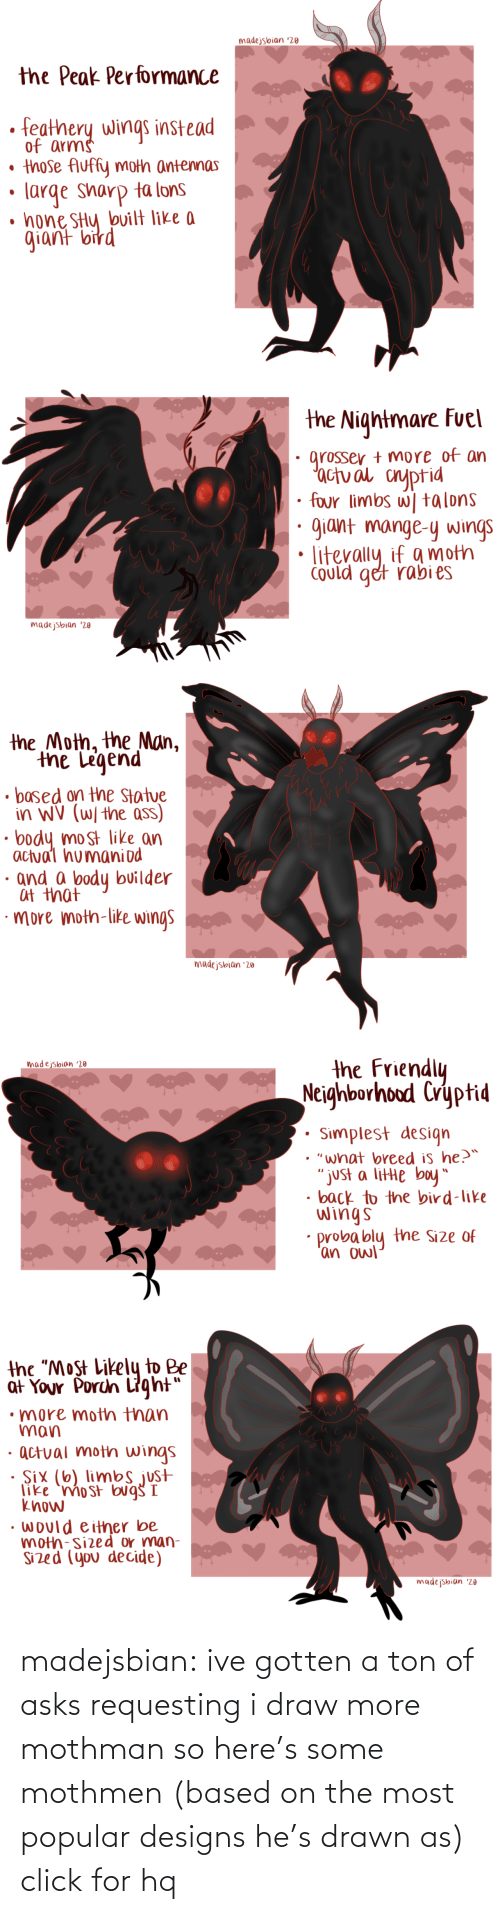 "Wings: madejsbian '20  the Peak Performance  feathery wings instead  of arms  • those Auffy moth antennas  large sharp ta lons  • hone SHy bvilt like a  giant bird   the Nightmare Fuel  grosser + more of an  'actual cnyptid  four limbs w| talons  giant mange-y wings  Could get rabi es  madejsbian '20   the Moth, the Man,  the Legend  • based on the Statue  in WV (W/ the ass)  body most like an  actual humaniod  · and a body builder  at that  ·more moth-like wings  madejsbian '20   the Friendly  Neighborhood Cryptid  madejsbian '20  Simplest design  • ""what breed is he?™  ""just a litte boy""  • back to the bird-like  wings  probably the Size of  'an owl   the ""Most Likely to Be  at Your Porch Light""  •more moth than  man  · actual moth wings  · Six (6) limbs just  like 'mo st bug I  know  • would either be  moth-sized or man-  Sized (you decide)  madejsbian '20 madejsbian: ive gotten a ton of asks requesting i draw more mothman so here's some mothmen (based on the most popular designs he's drawn as)